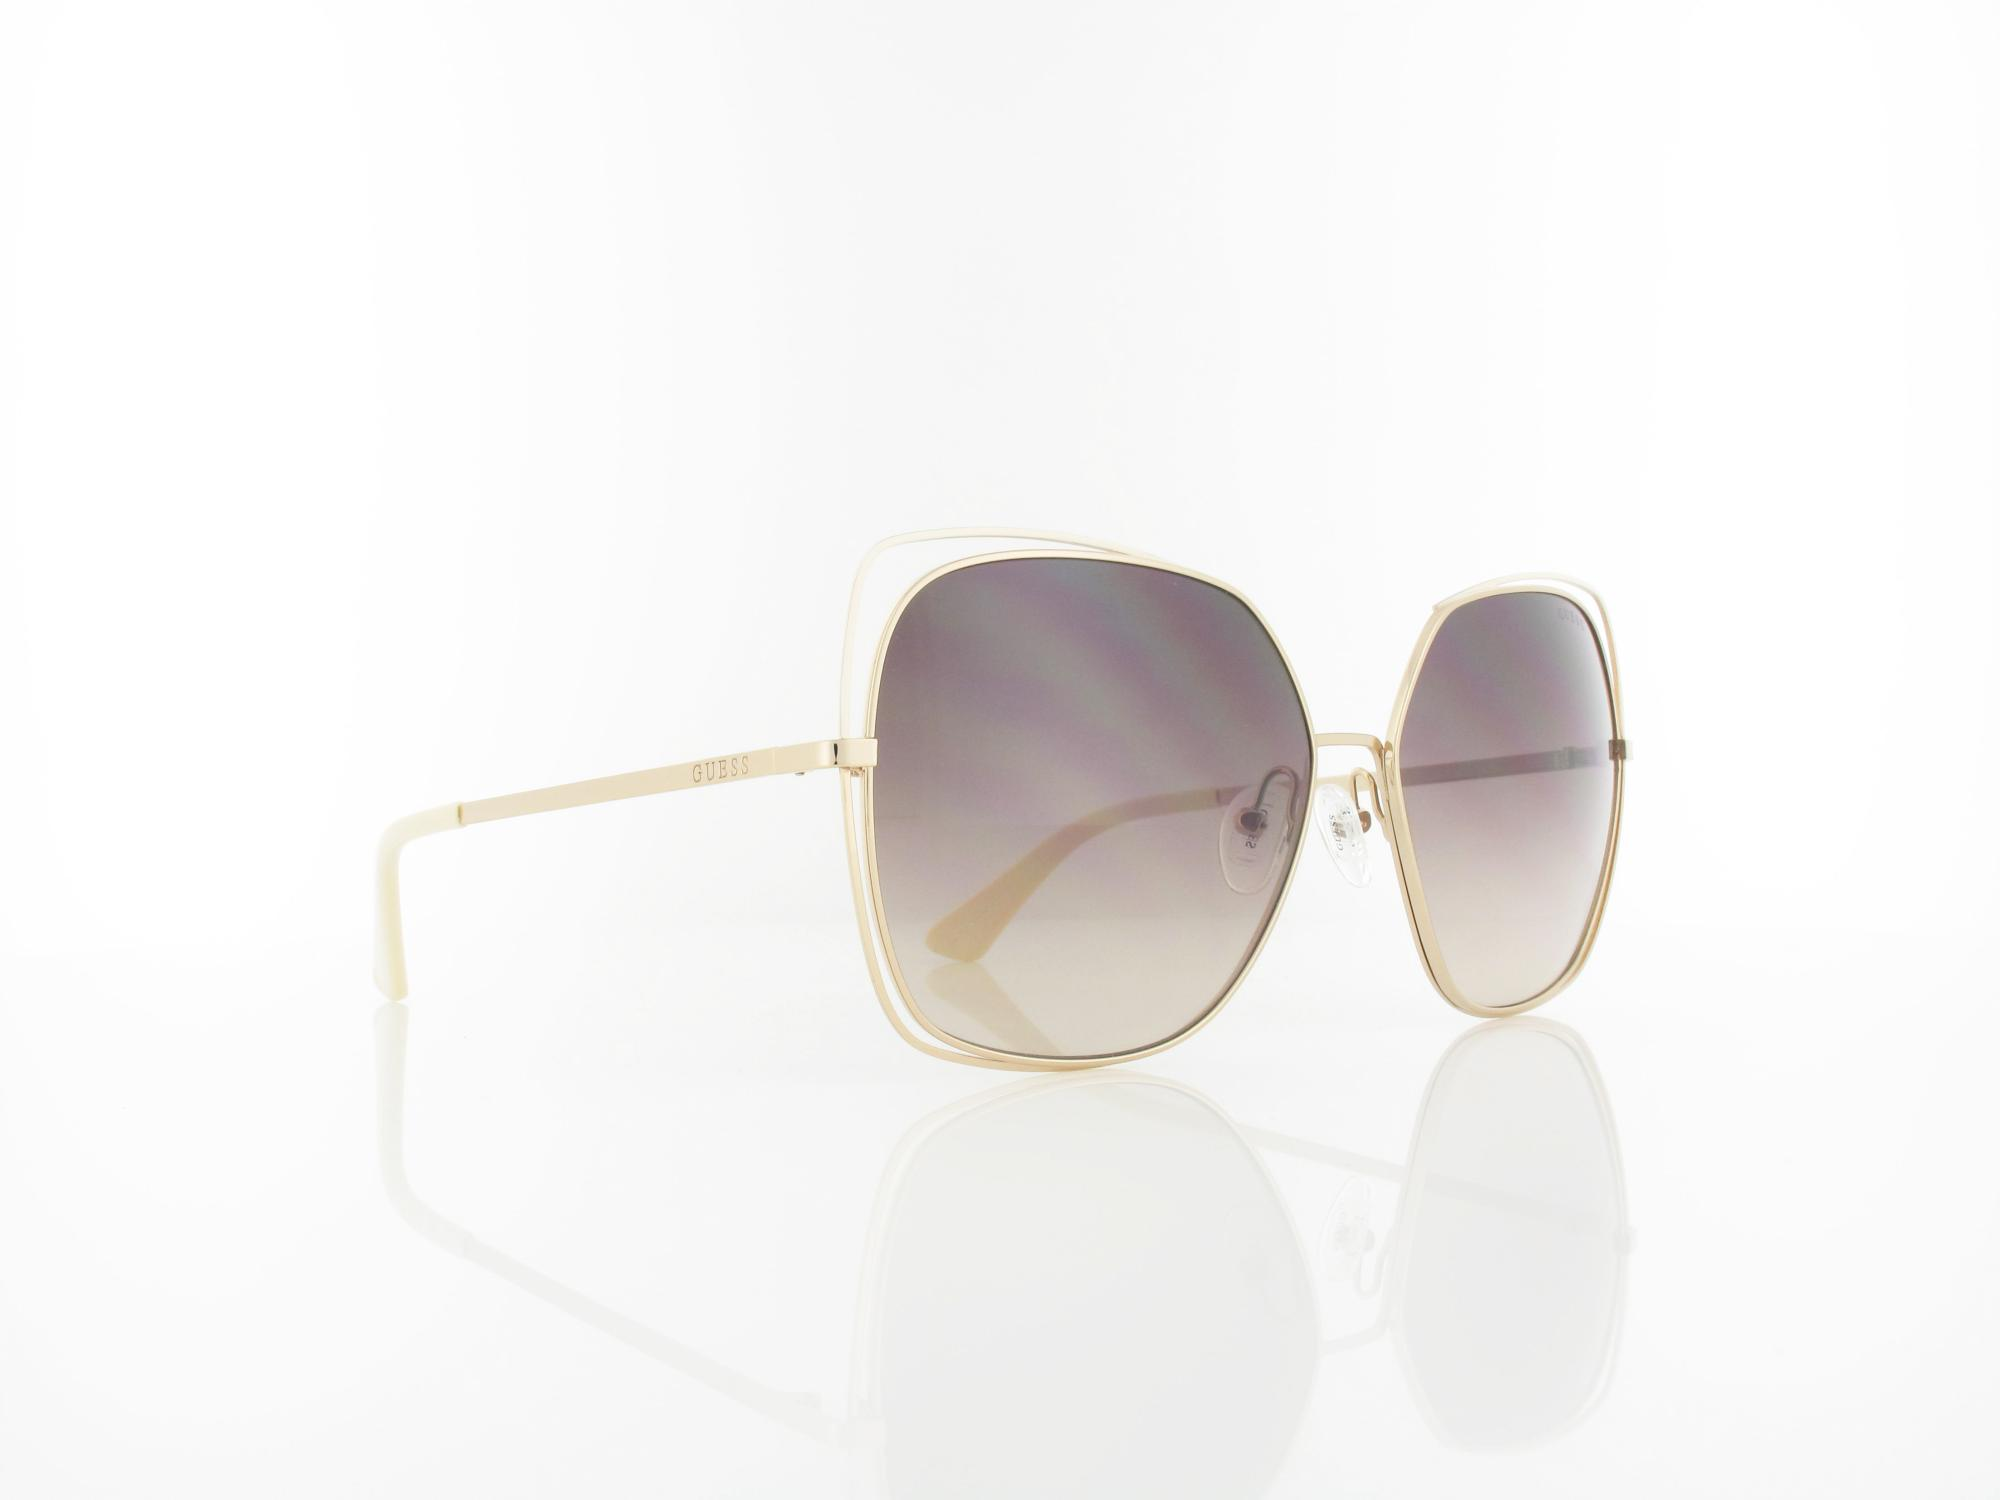 Guess | GU7638 32G 61 | gold / brown mirror